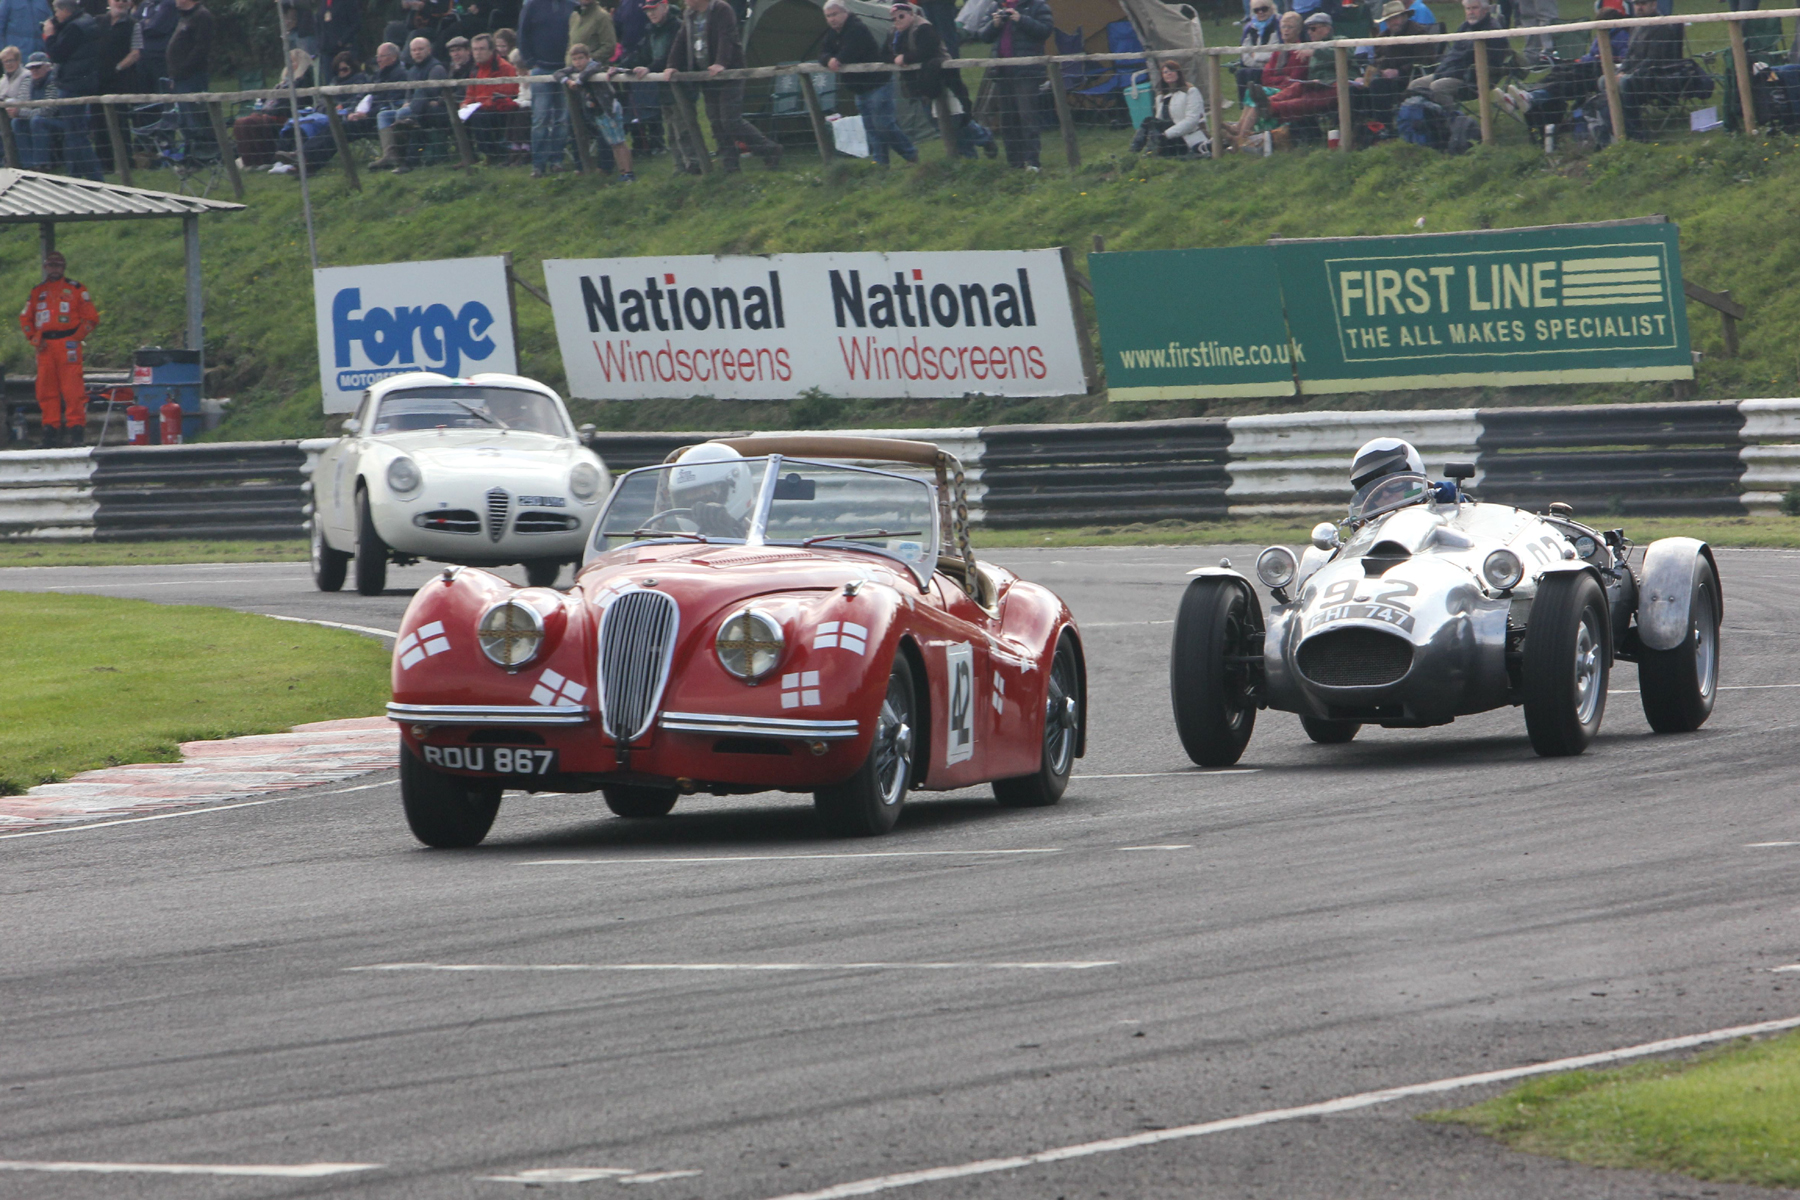 Geoff Ottley (XK120), Peter Campbell (Wingfield Bristol Special) and Brian Arculus (Alfa Romeo Guilietta SVZ) round Camp (last corner) at the end of lap 2.                                        Photo - Pat Arculus, Tripos Media